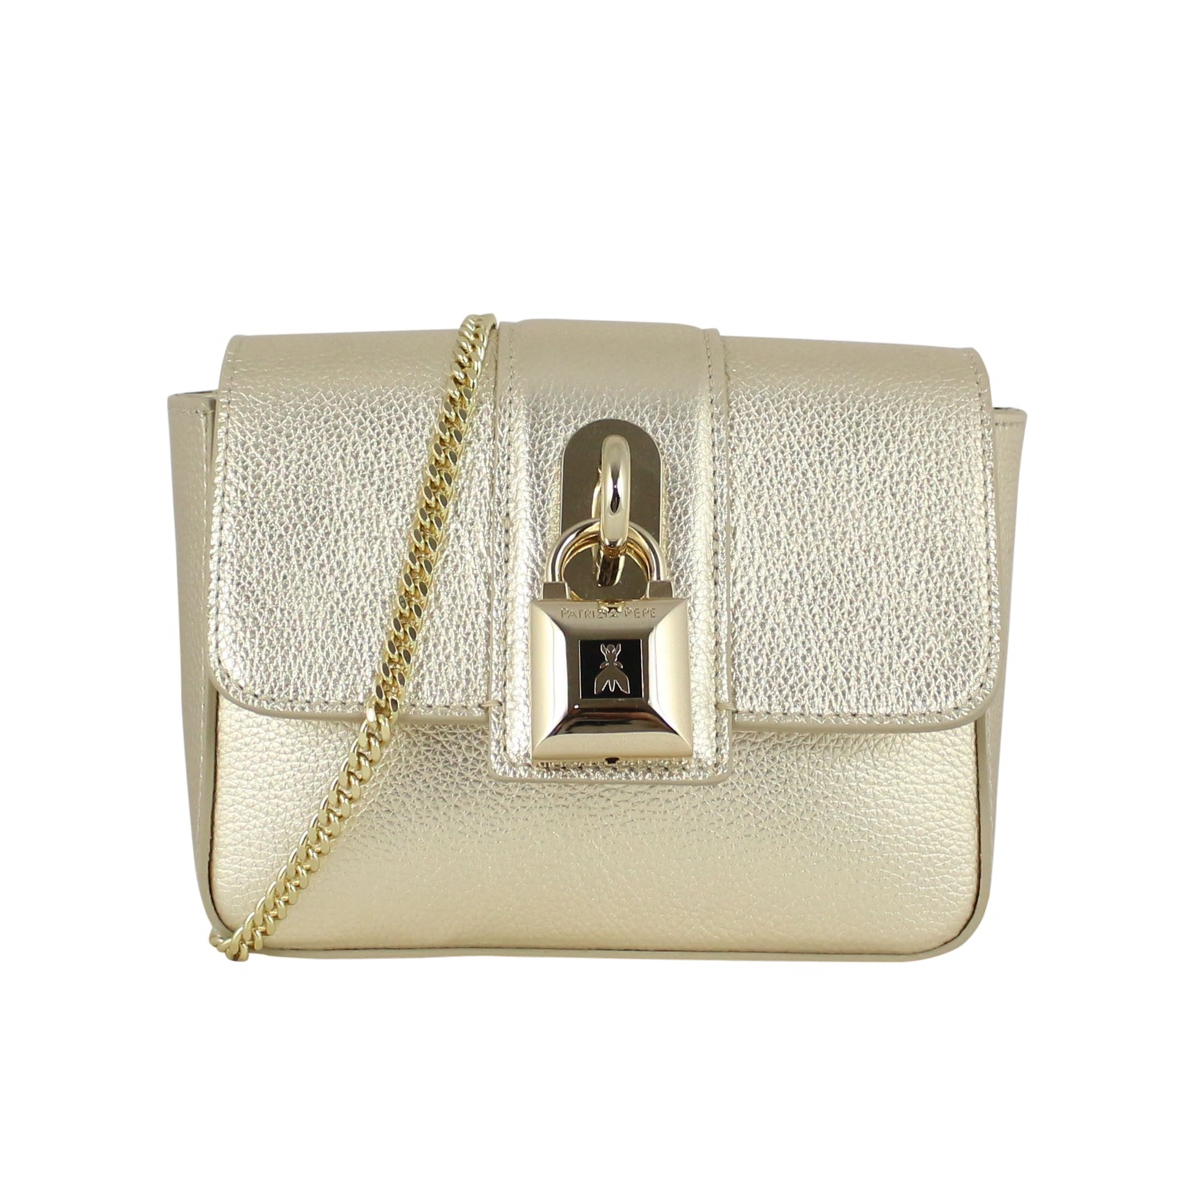 Mini leather bag Platinum Patrizia Pepe